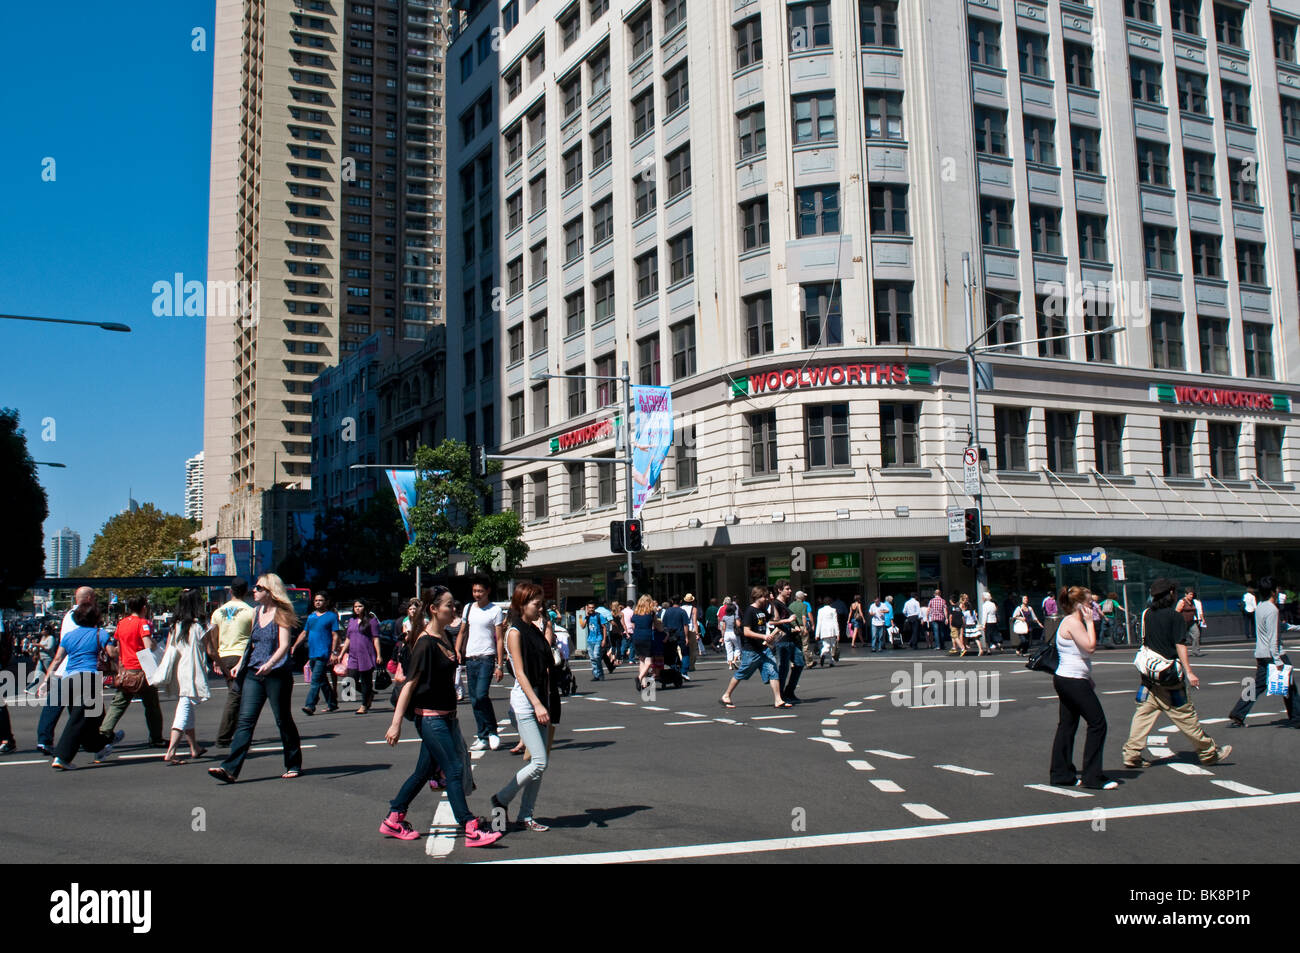 People diagonally crossing George Street at Woolworths supermarket, CBD, Sydney, Australia - Stock Image